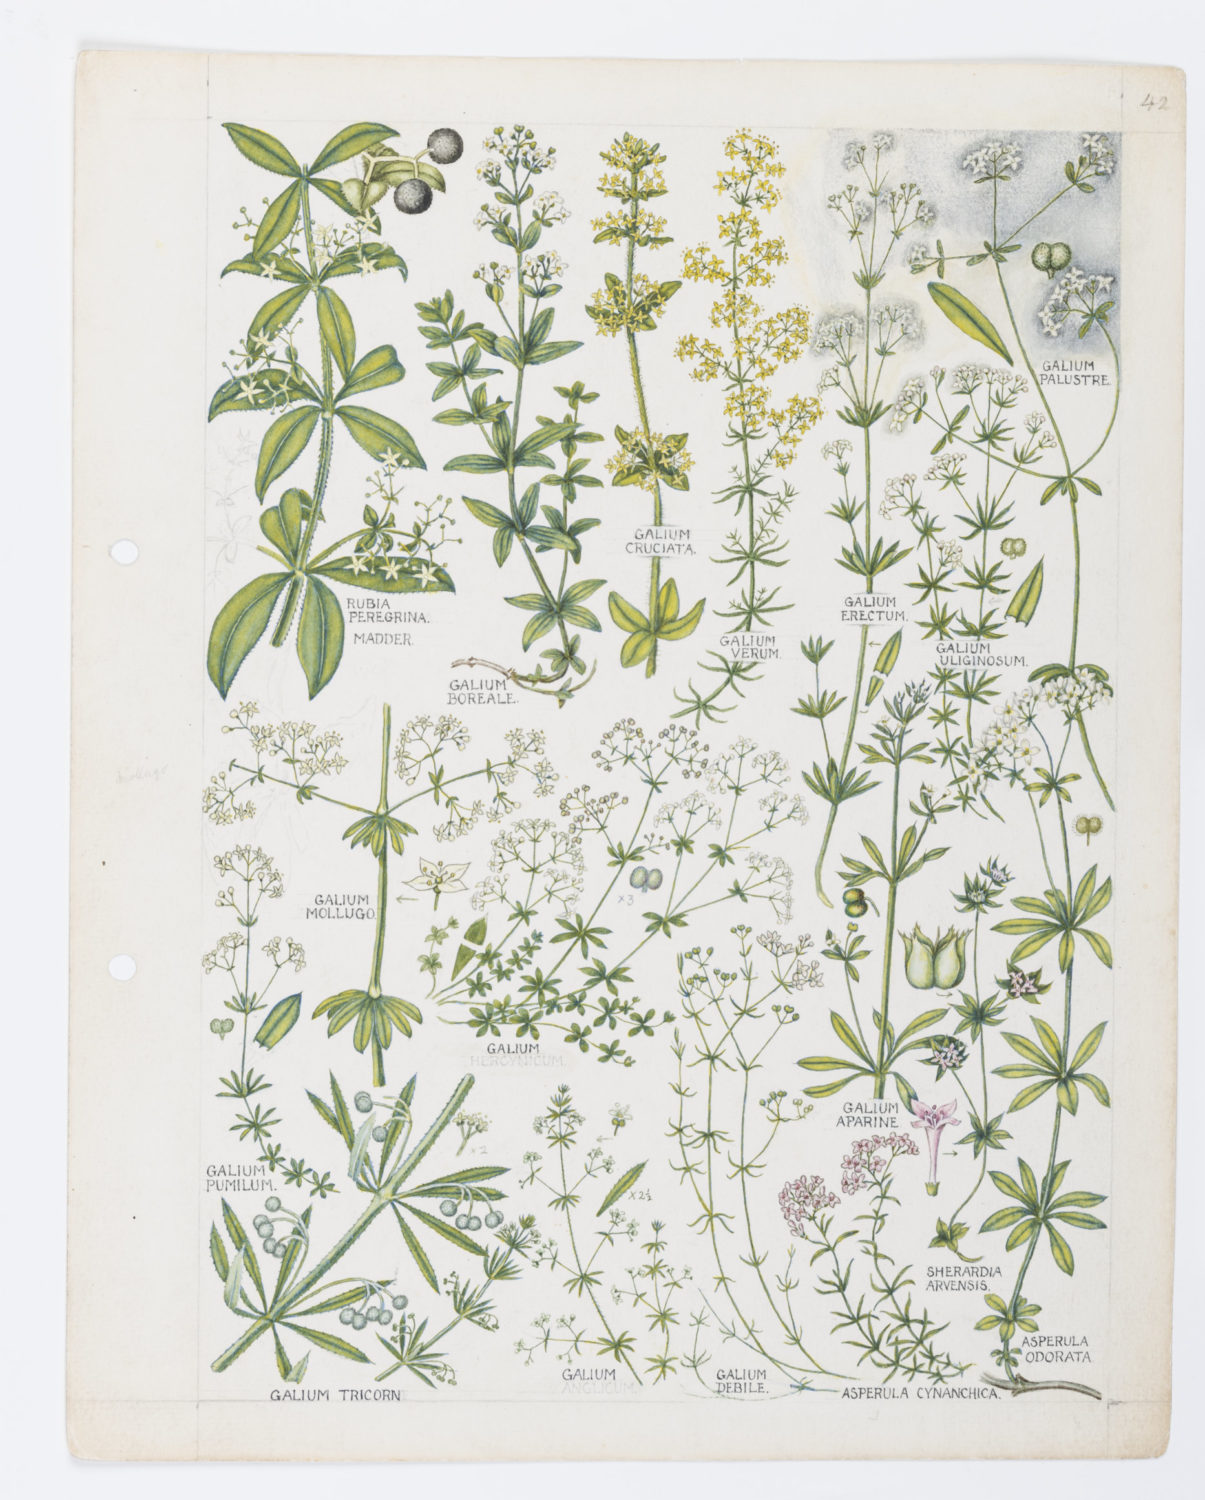 Illustration of Rubiaceae: bedstraws and nettles by Keble Martin